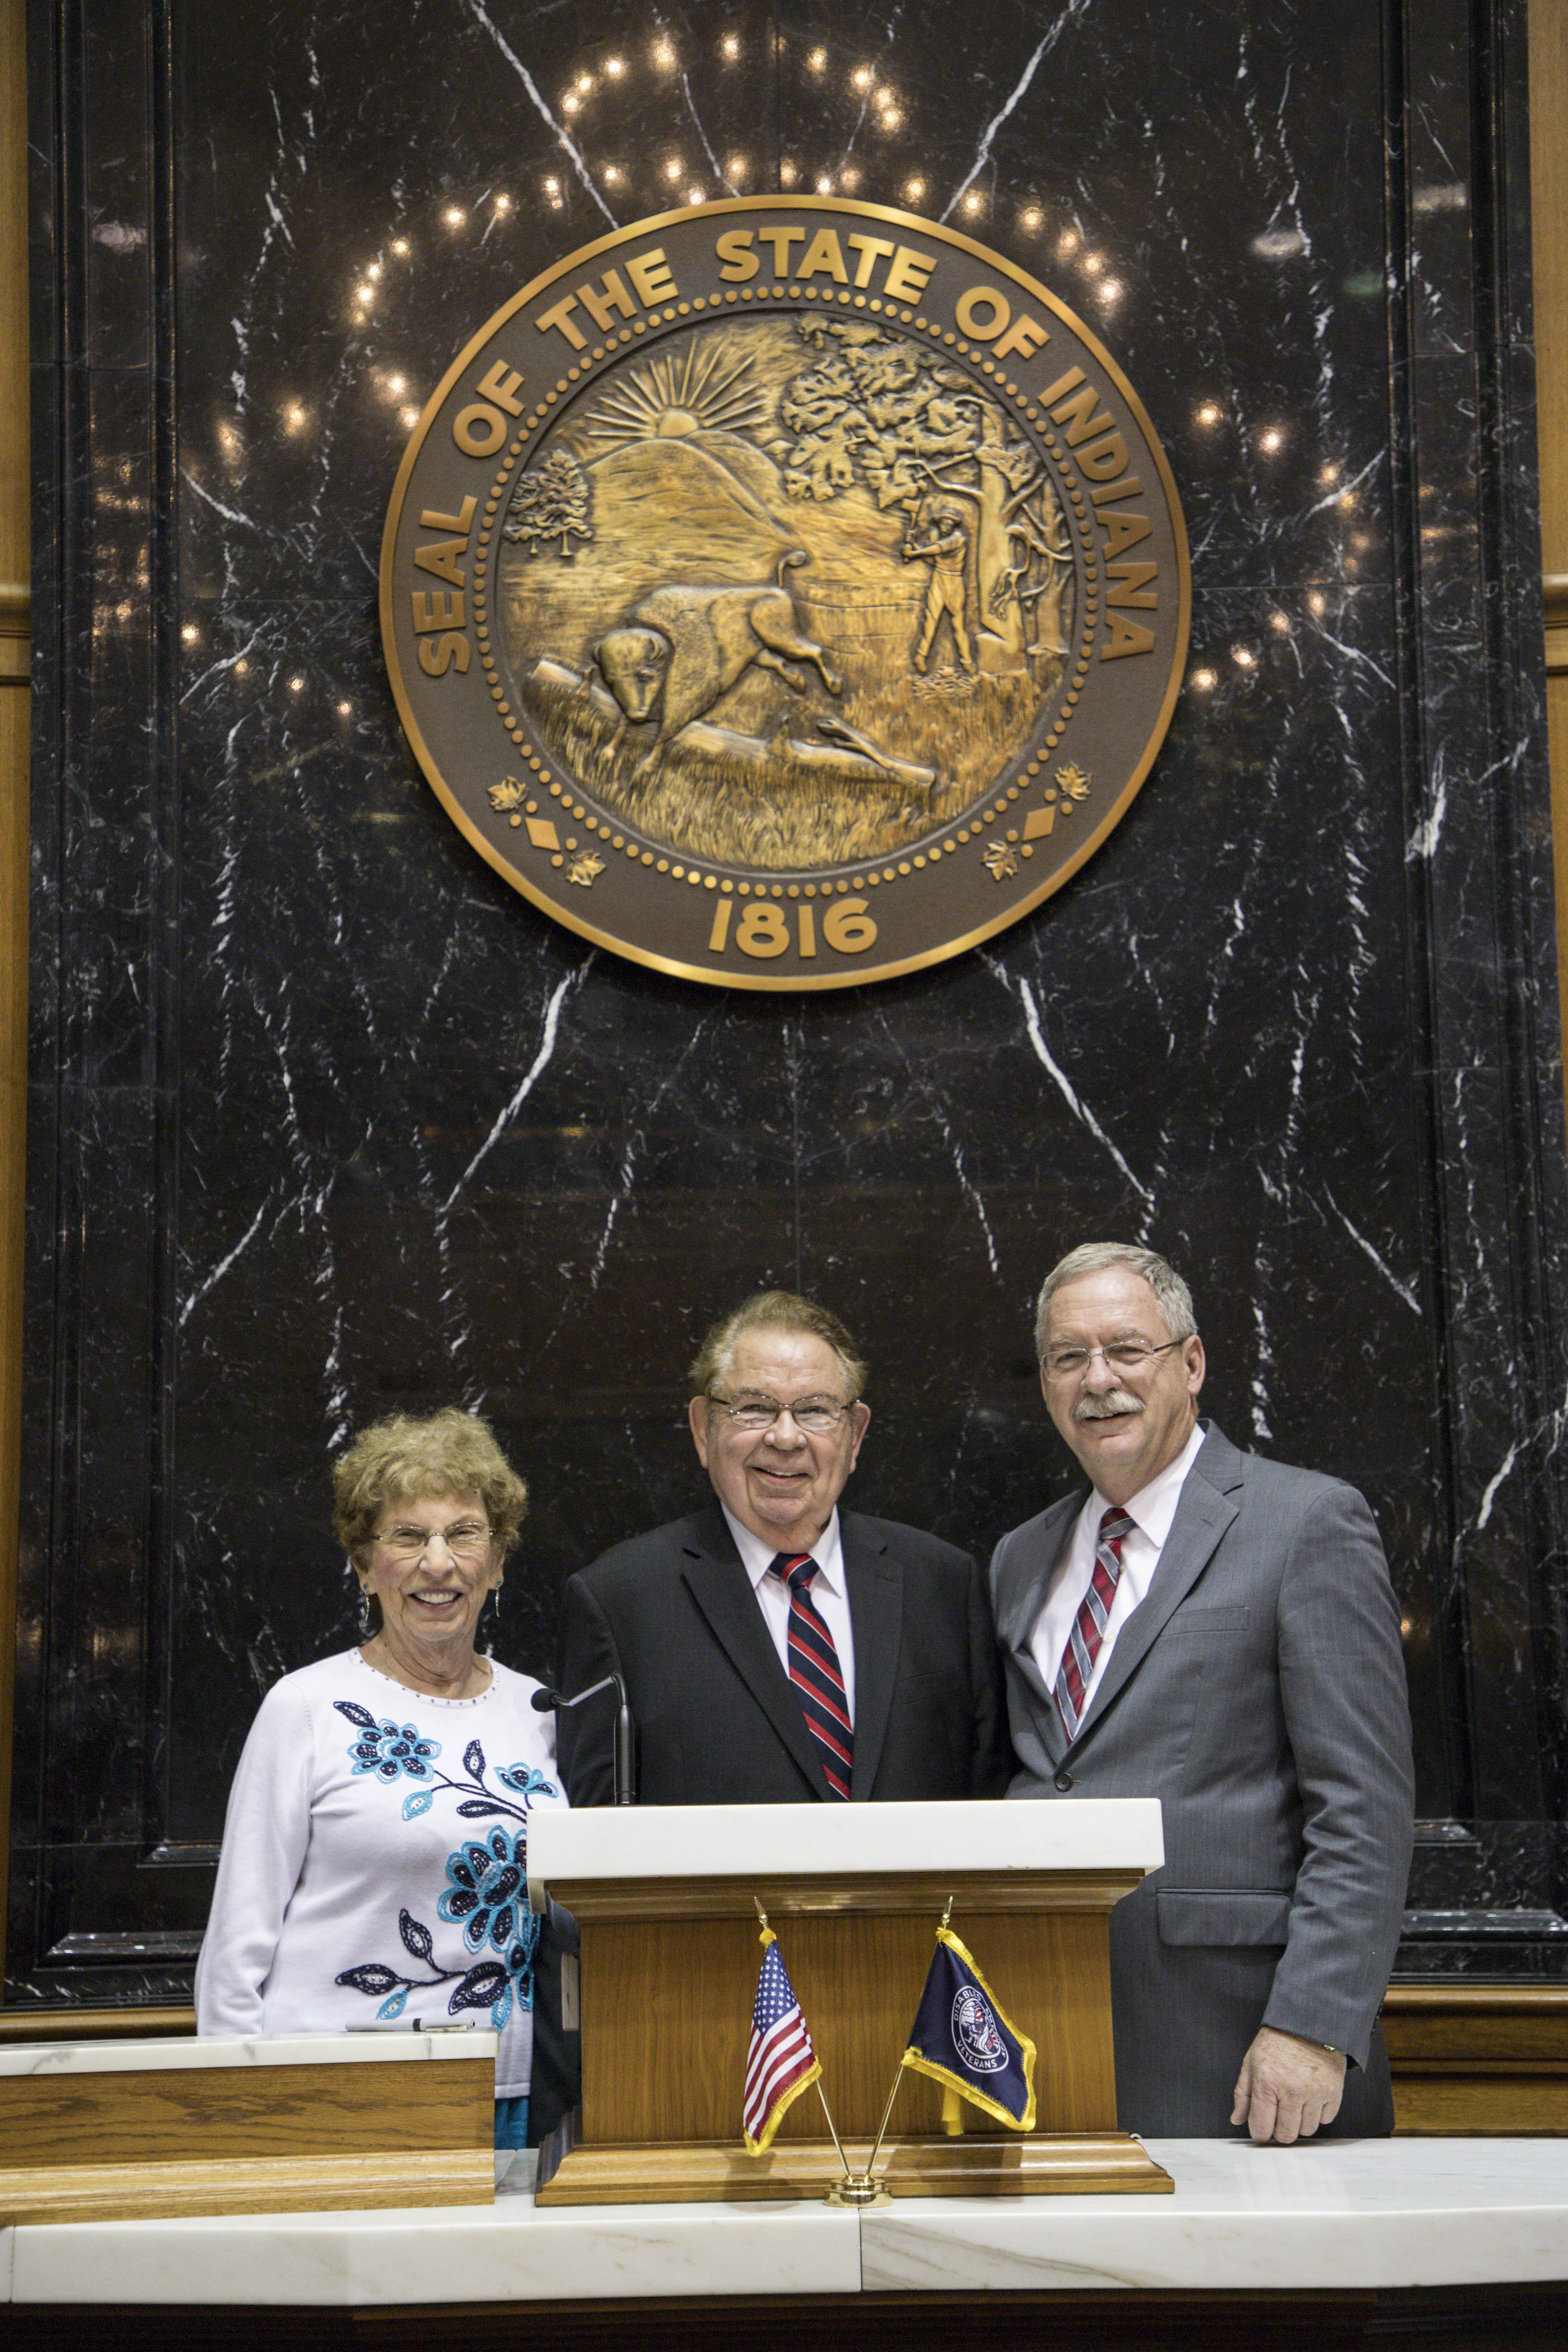 Rep. Leonard: Local minister leads House invocation